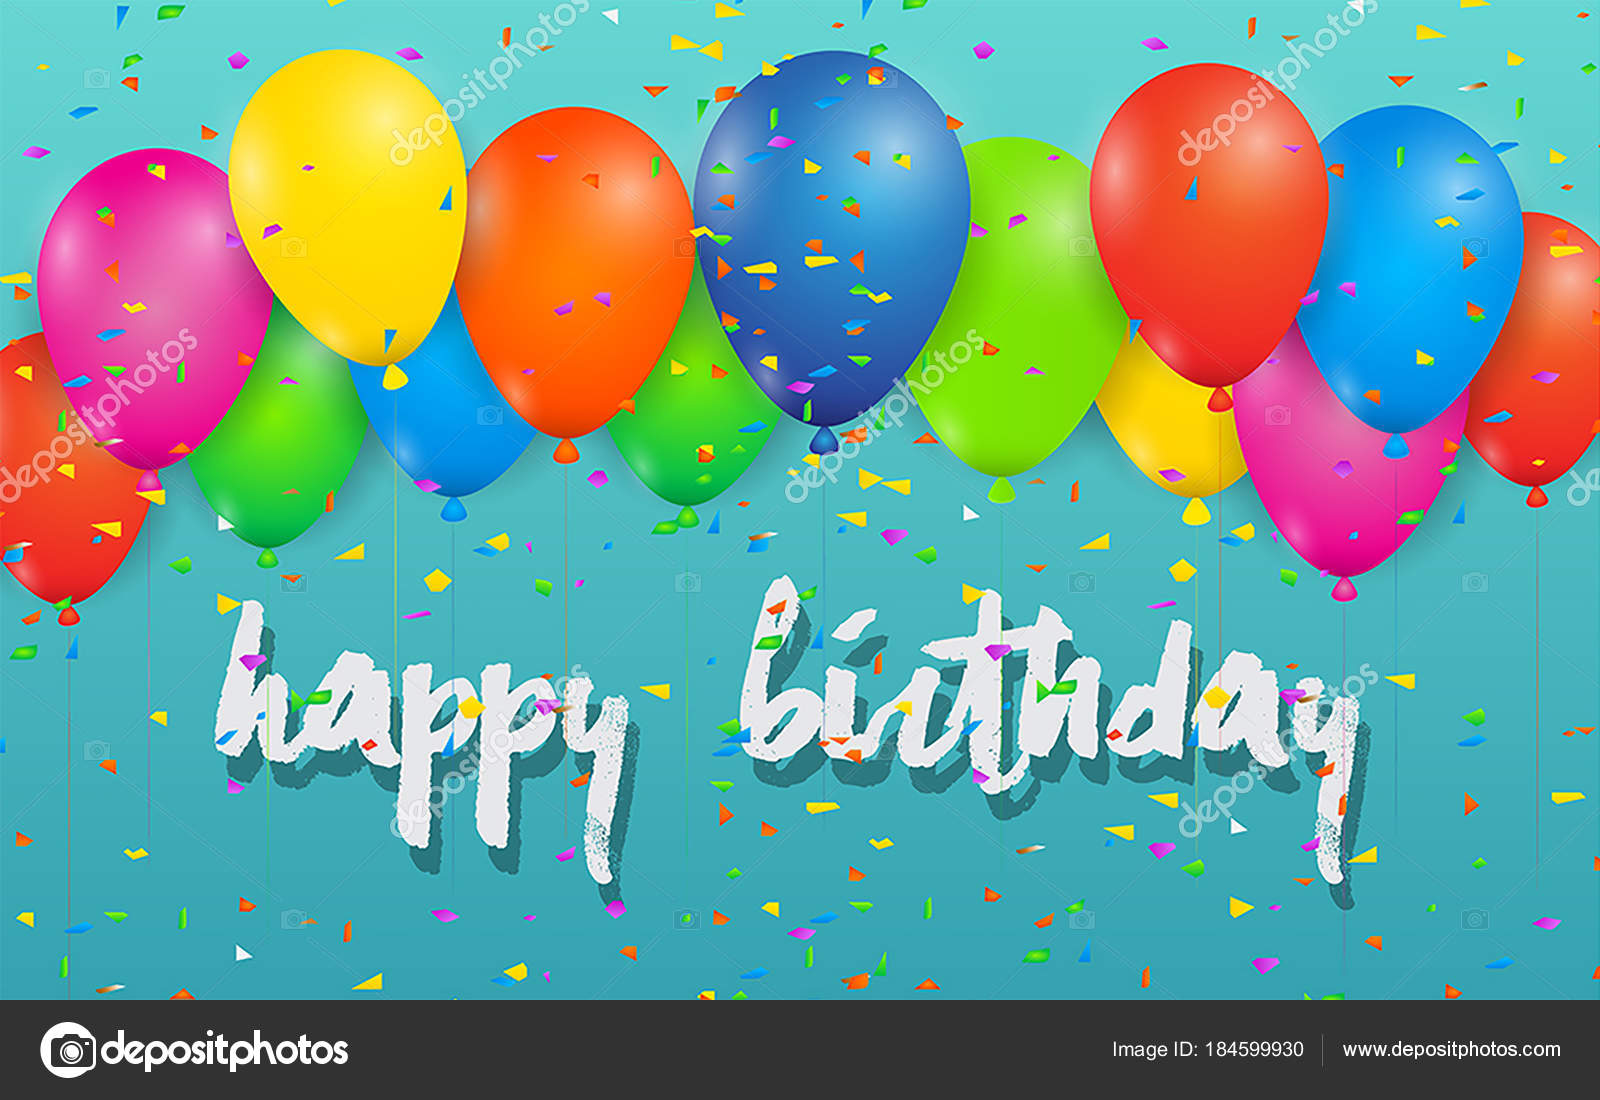 Happy Birthday Greeting Card Auf Hintergrund Vektor Illustration Design Fur Grusskarten Und Poster Mit Ballons